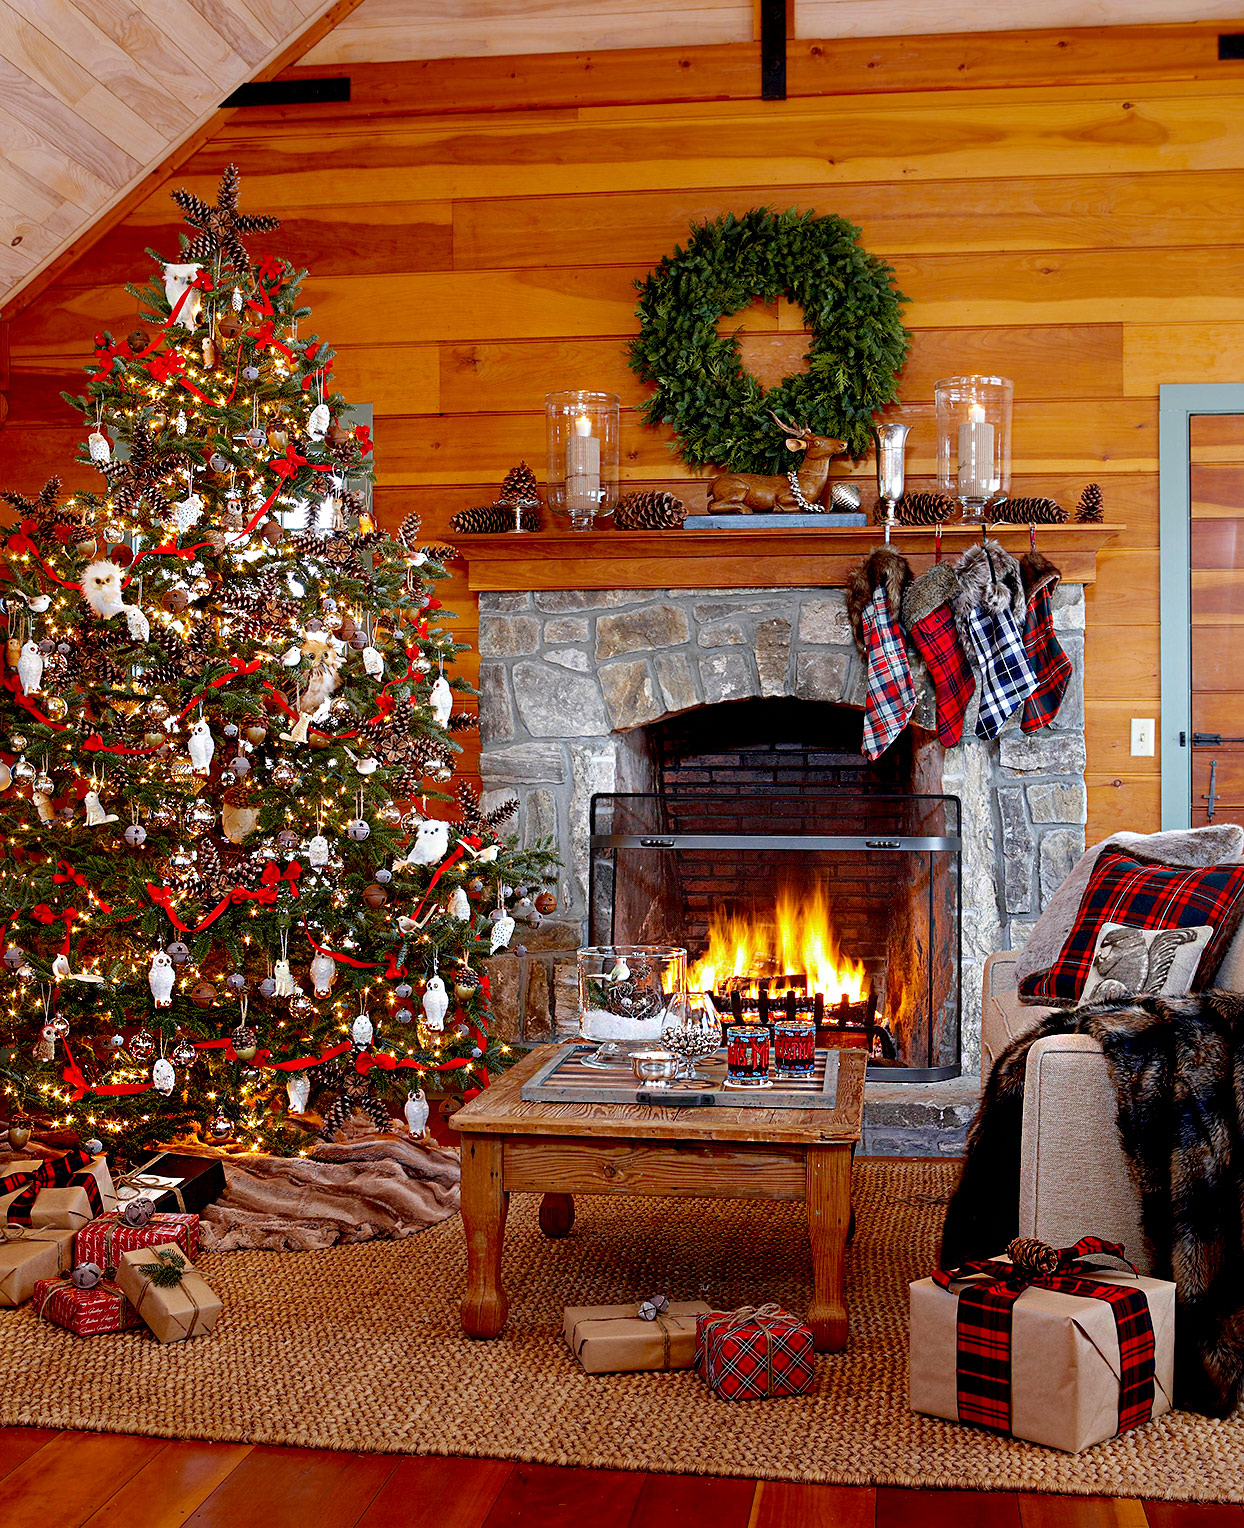 Living room with large Christmas tree and fireplace